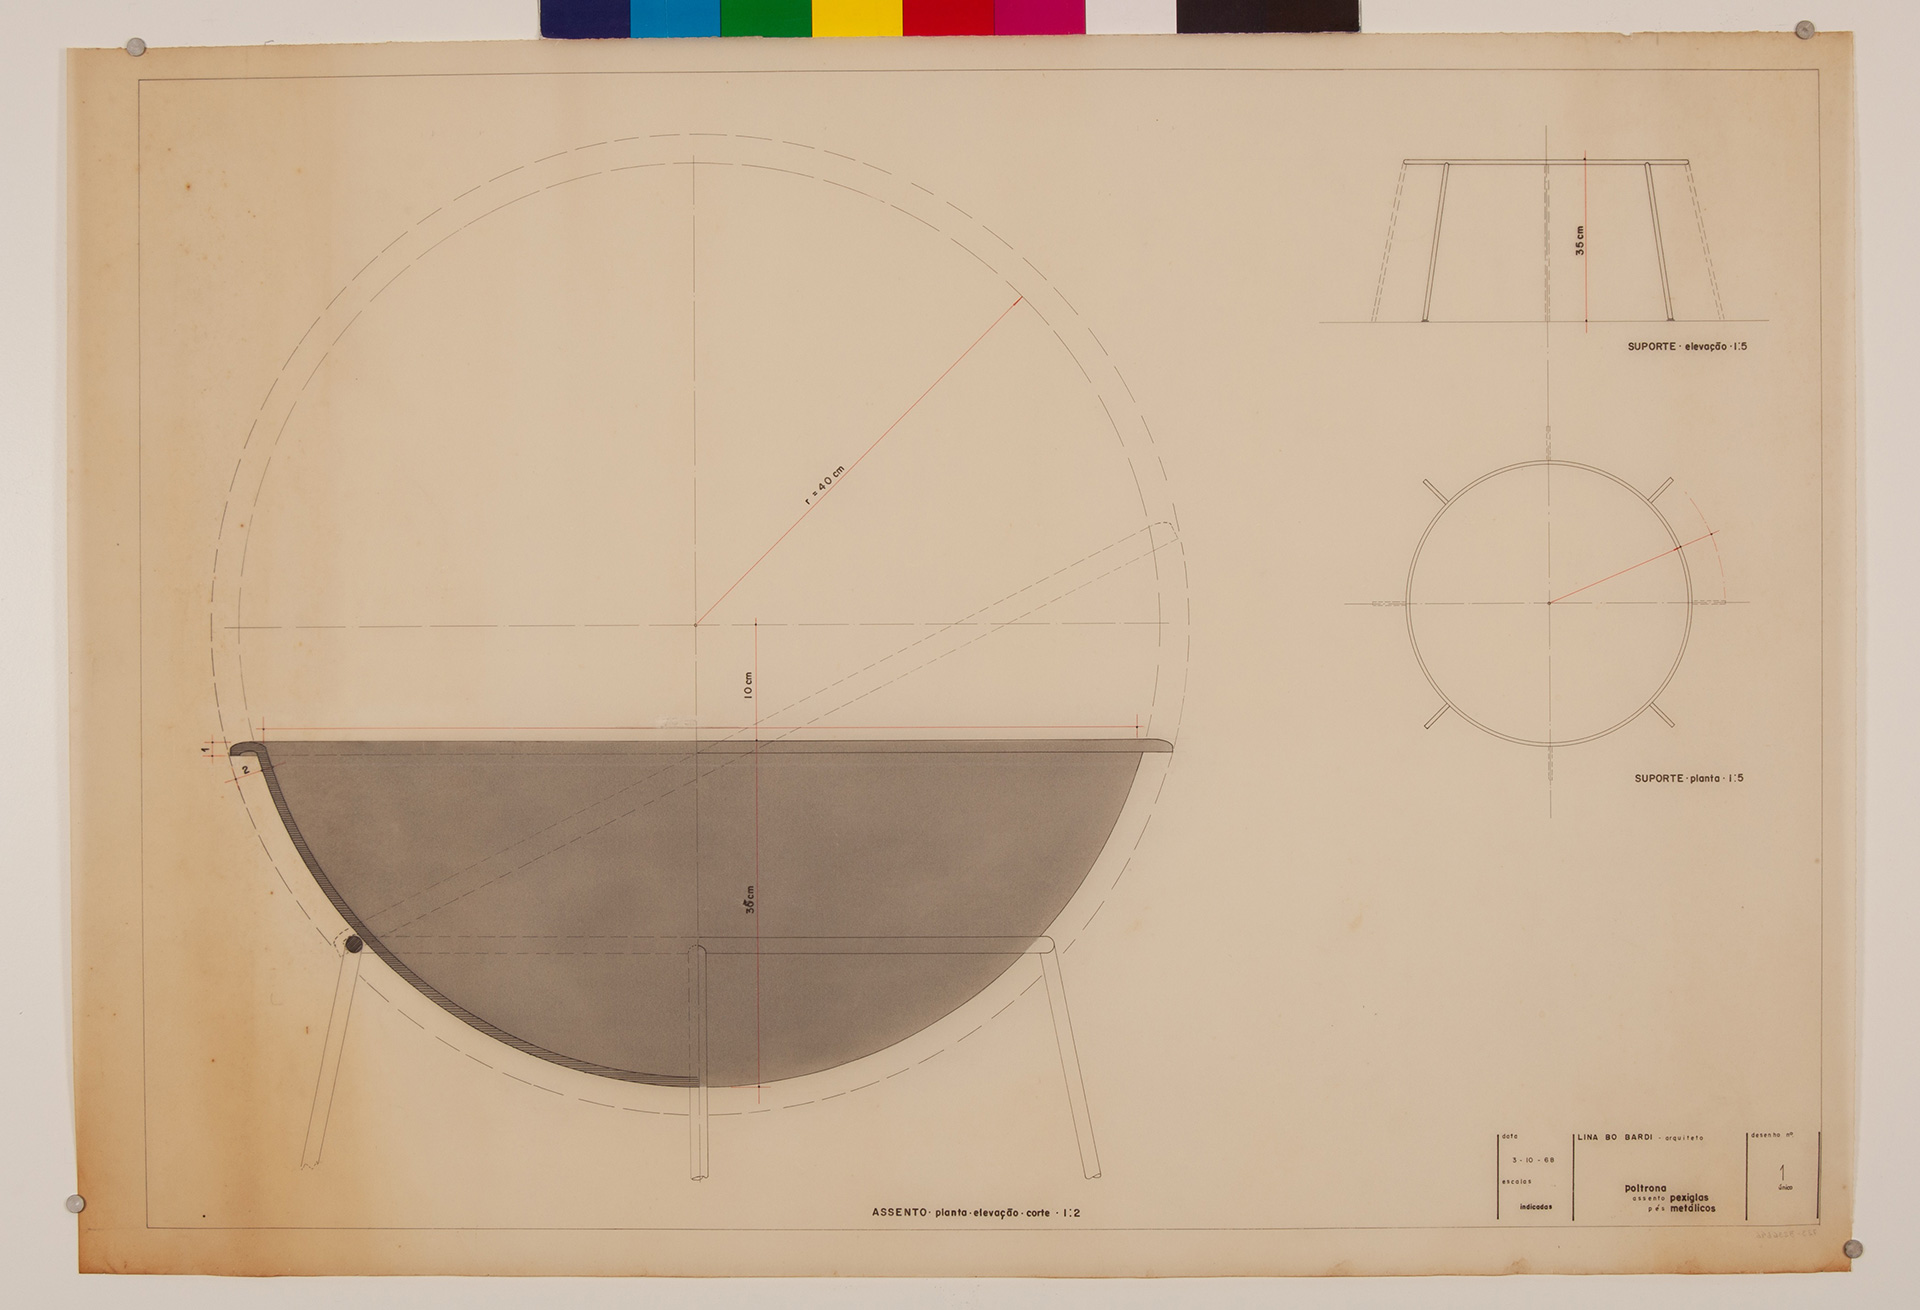 Plans, section and elevation of the Bardi's Bowl| The Special Golden Lion for Lifetime Achievement, in memoriam, Biennale Architettura 2021 | Lina Bo Bardi | STIRworld